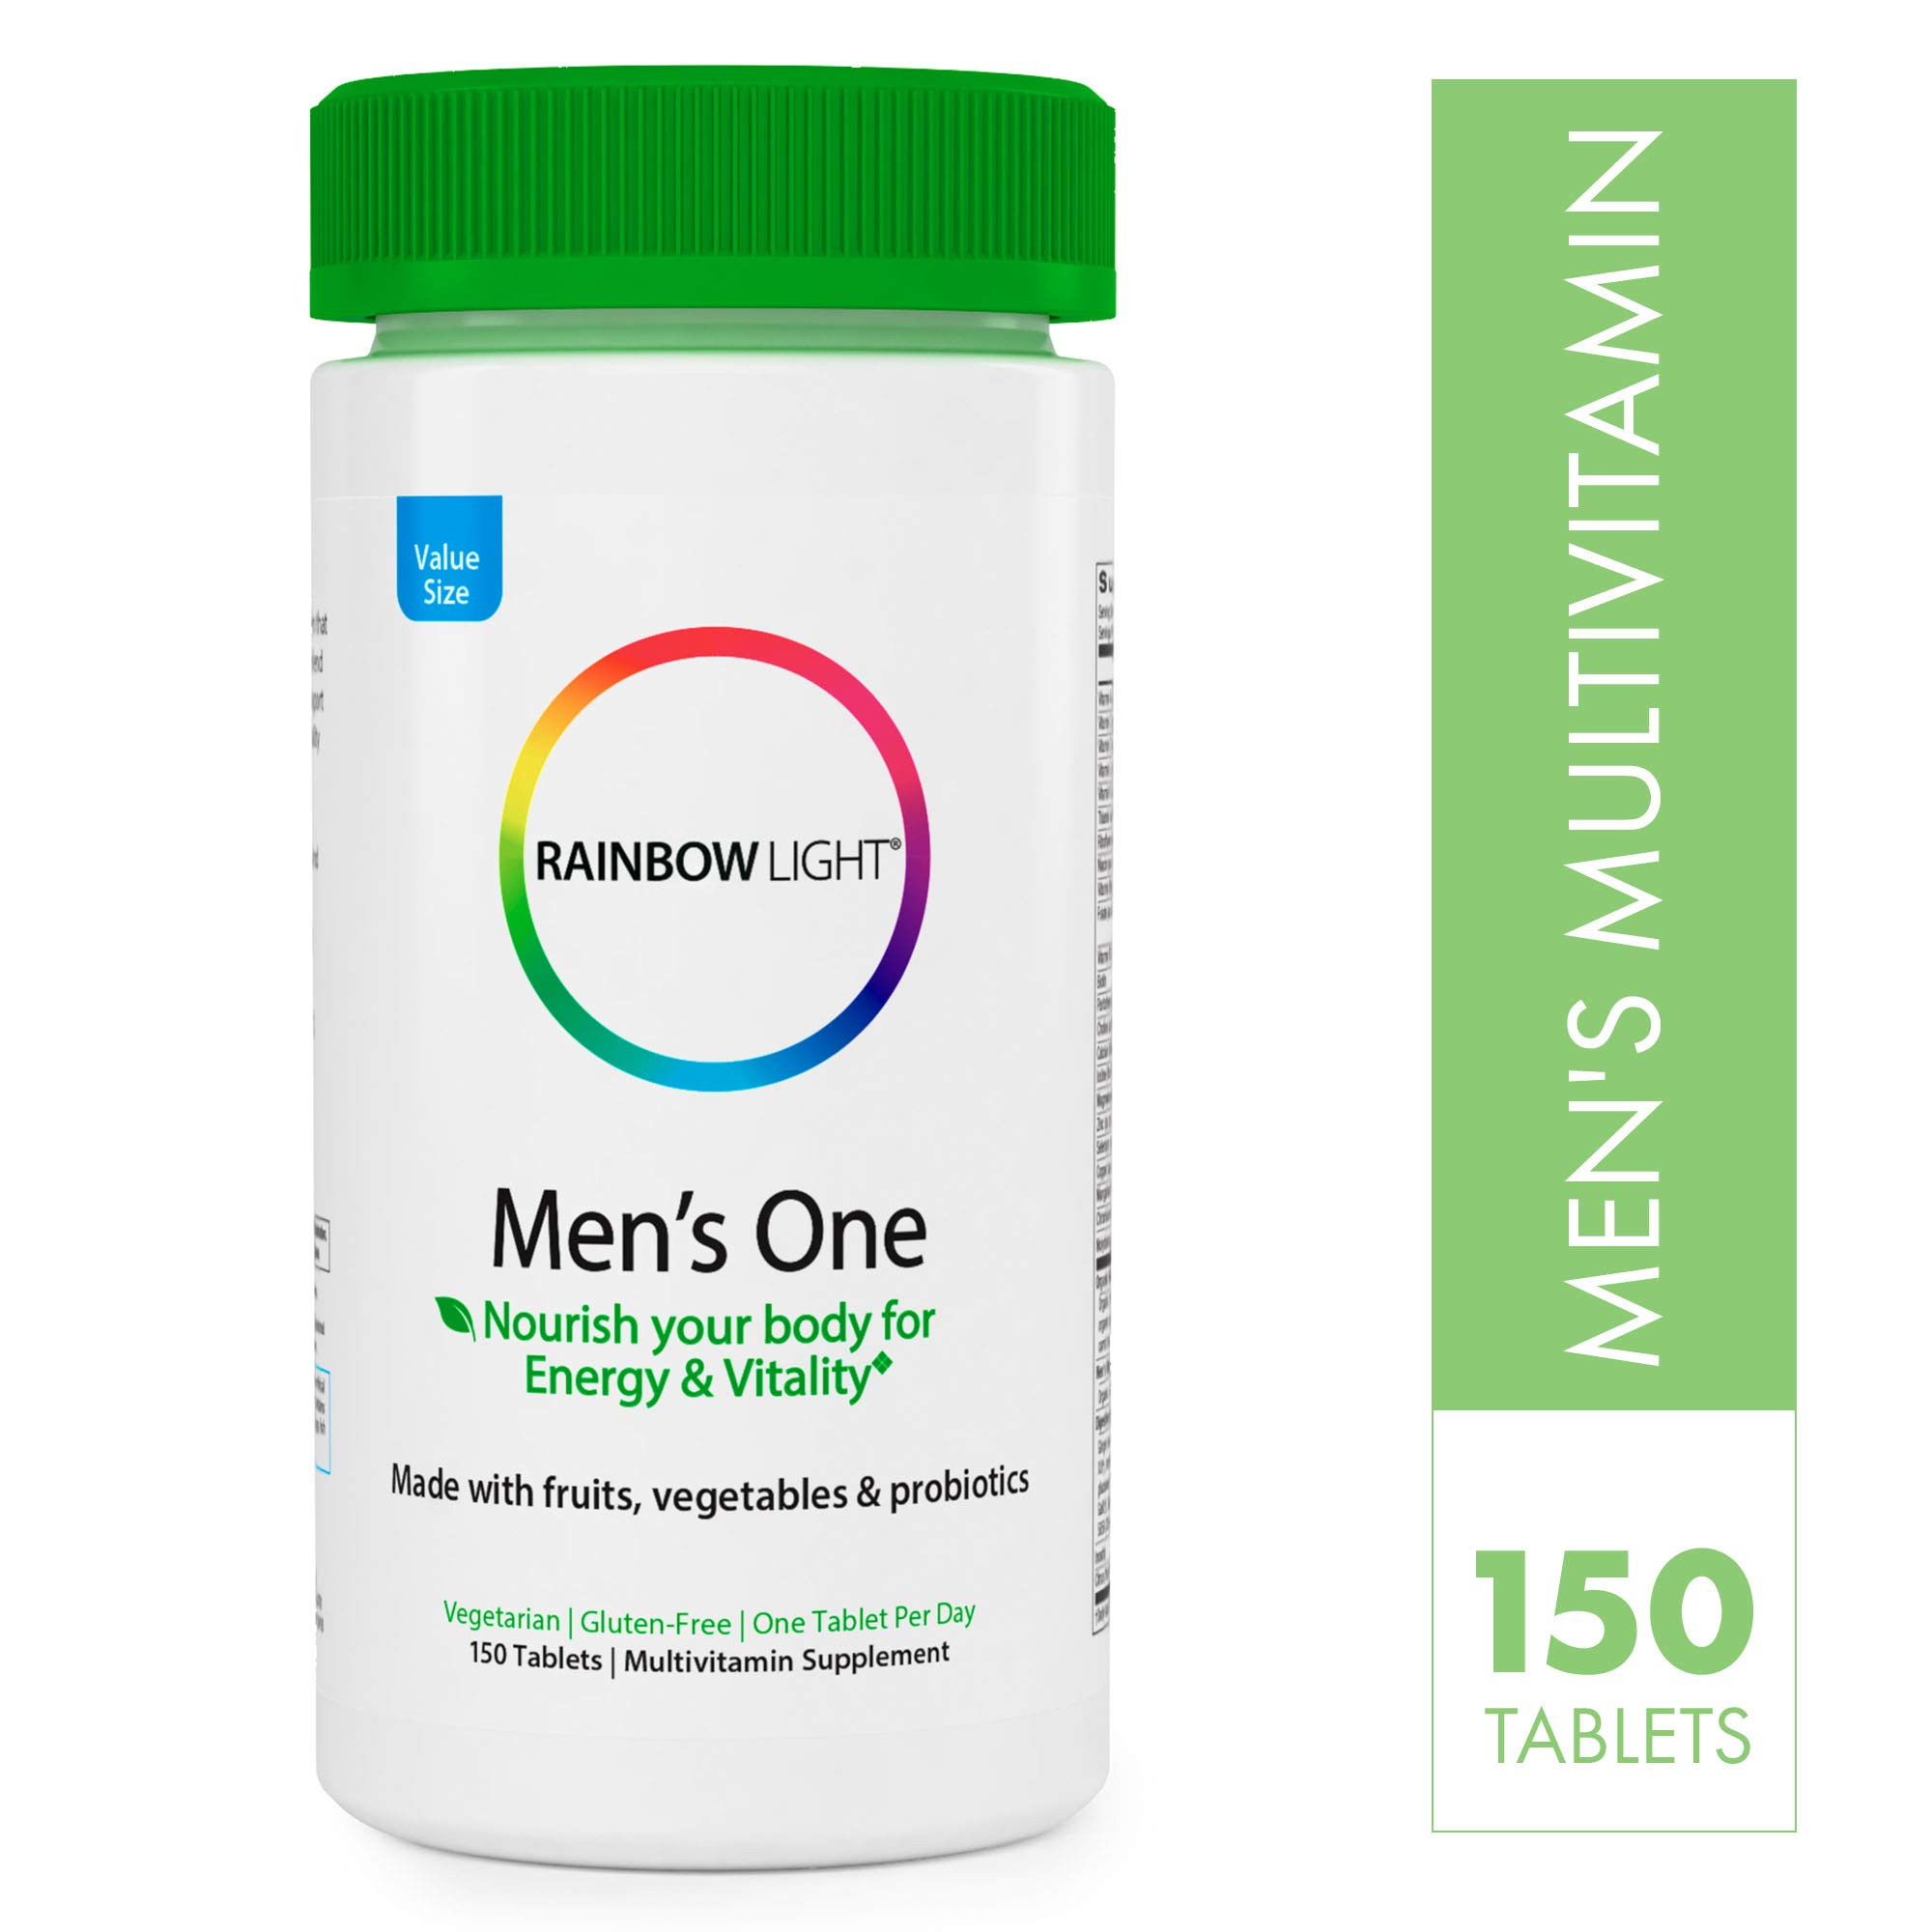 Rainbow Light Men's One Multivitamin, Once-daily Nutritional Support for Men's Health, 150 Count (Pack of 1) by Rainbow Light